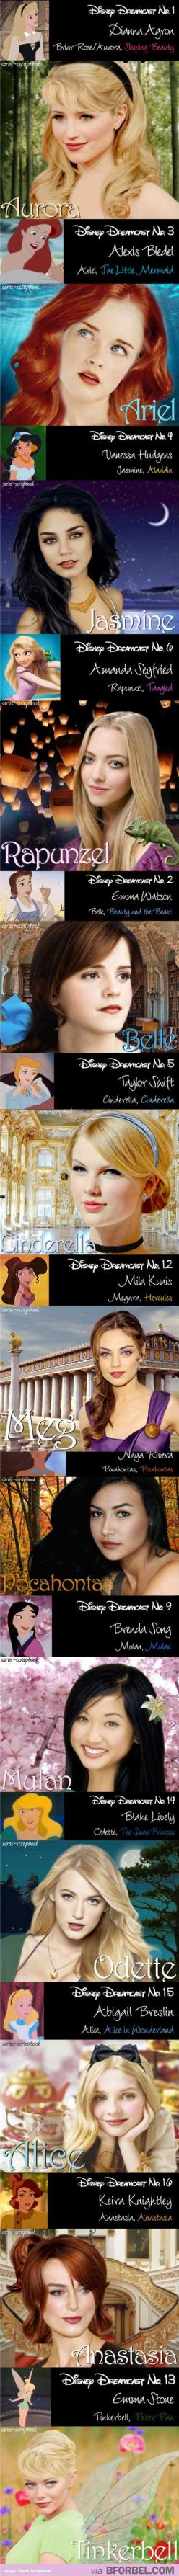 Disney Dreamcast. My wife and daughters would probably like these choices. I think whoever picked these girls did a good job. What do you think?: Disney Stuff, Taylor Swift, Real Life, Disney Dreamcast, Disney Princesses, The Swan Princess, Disney Charact